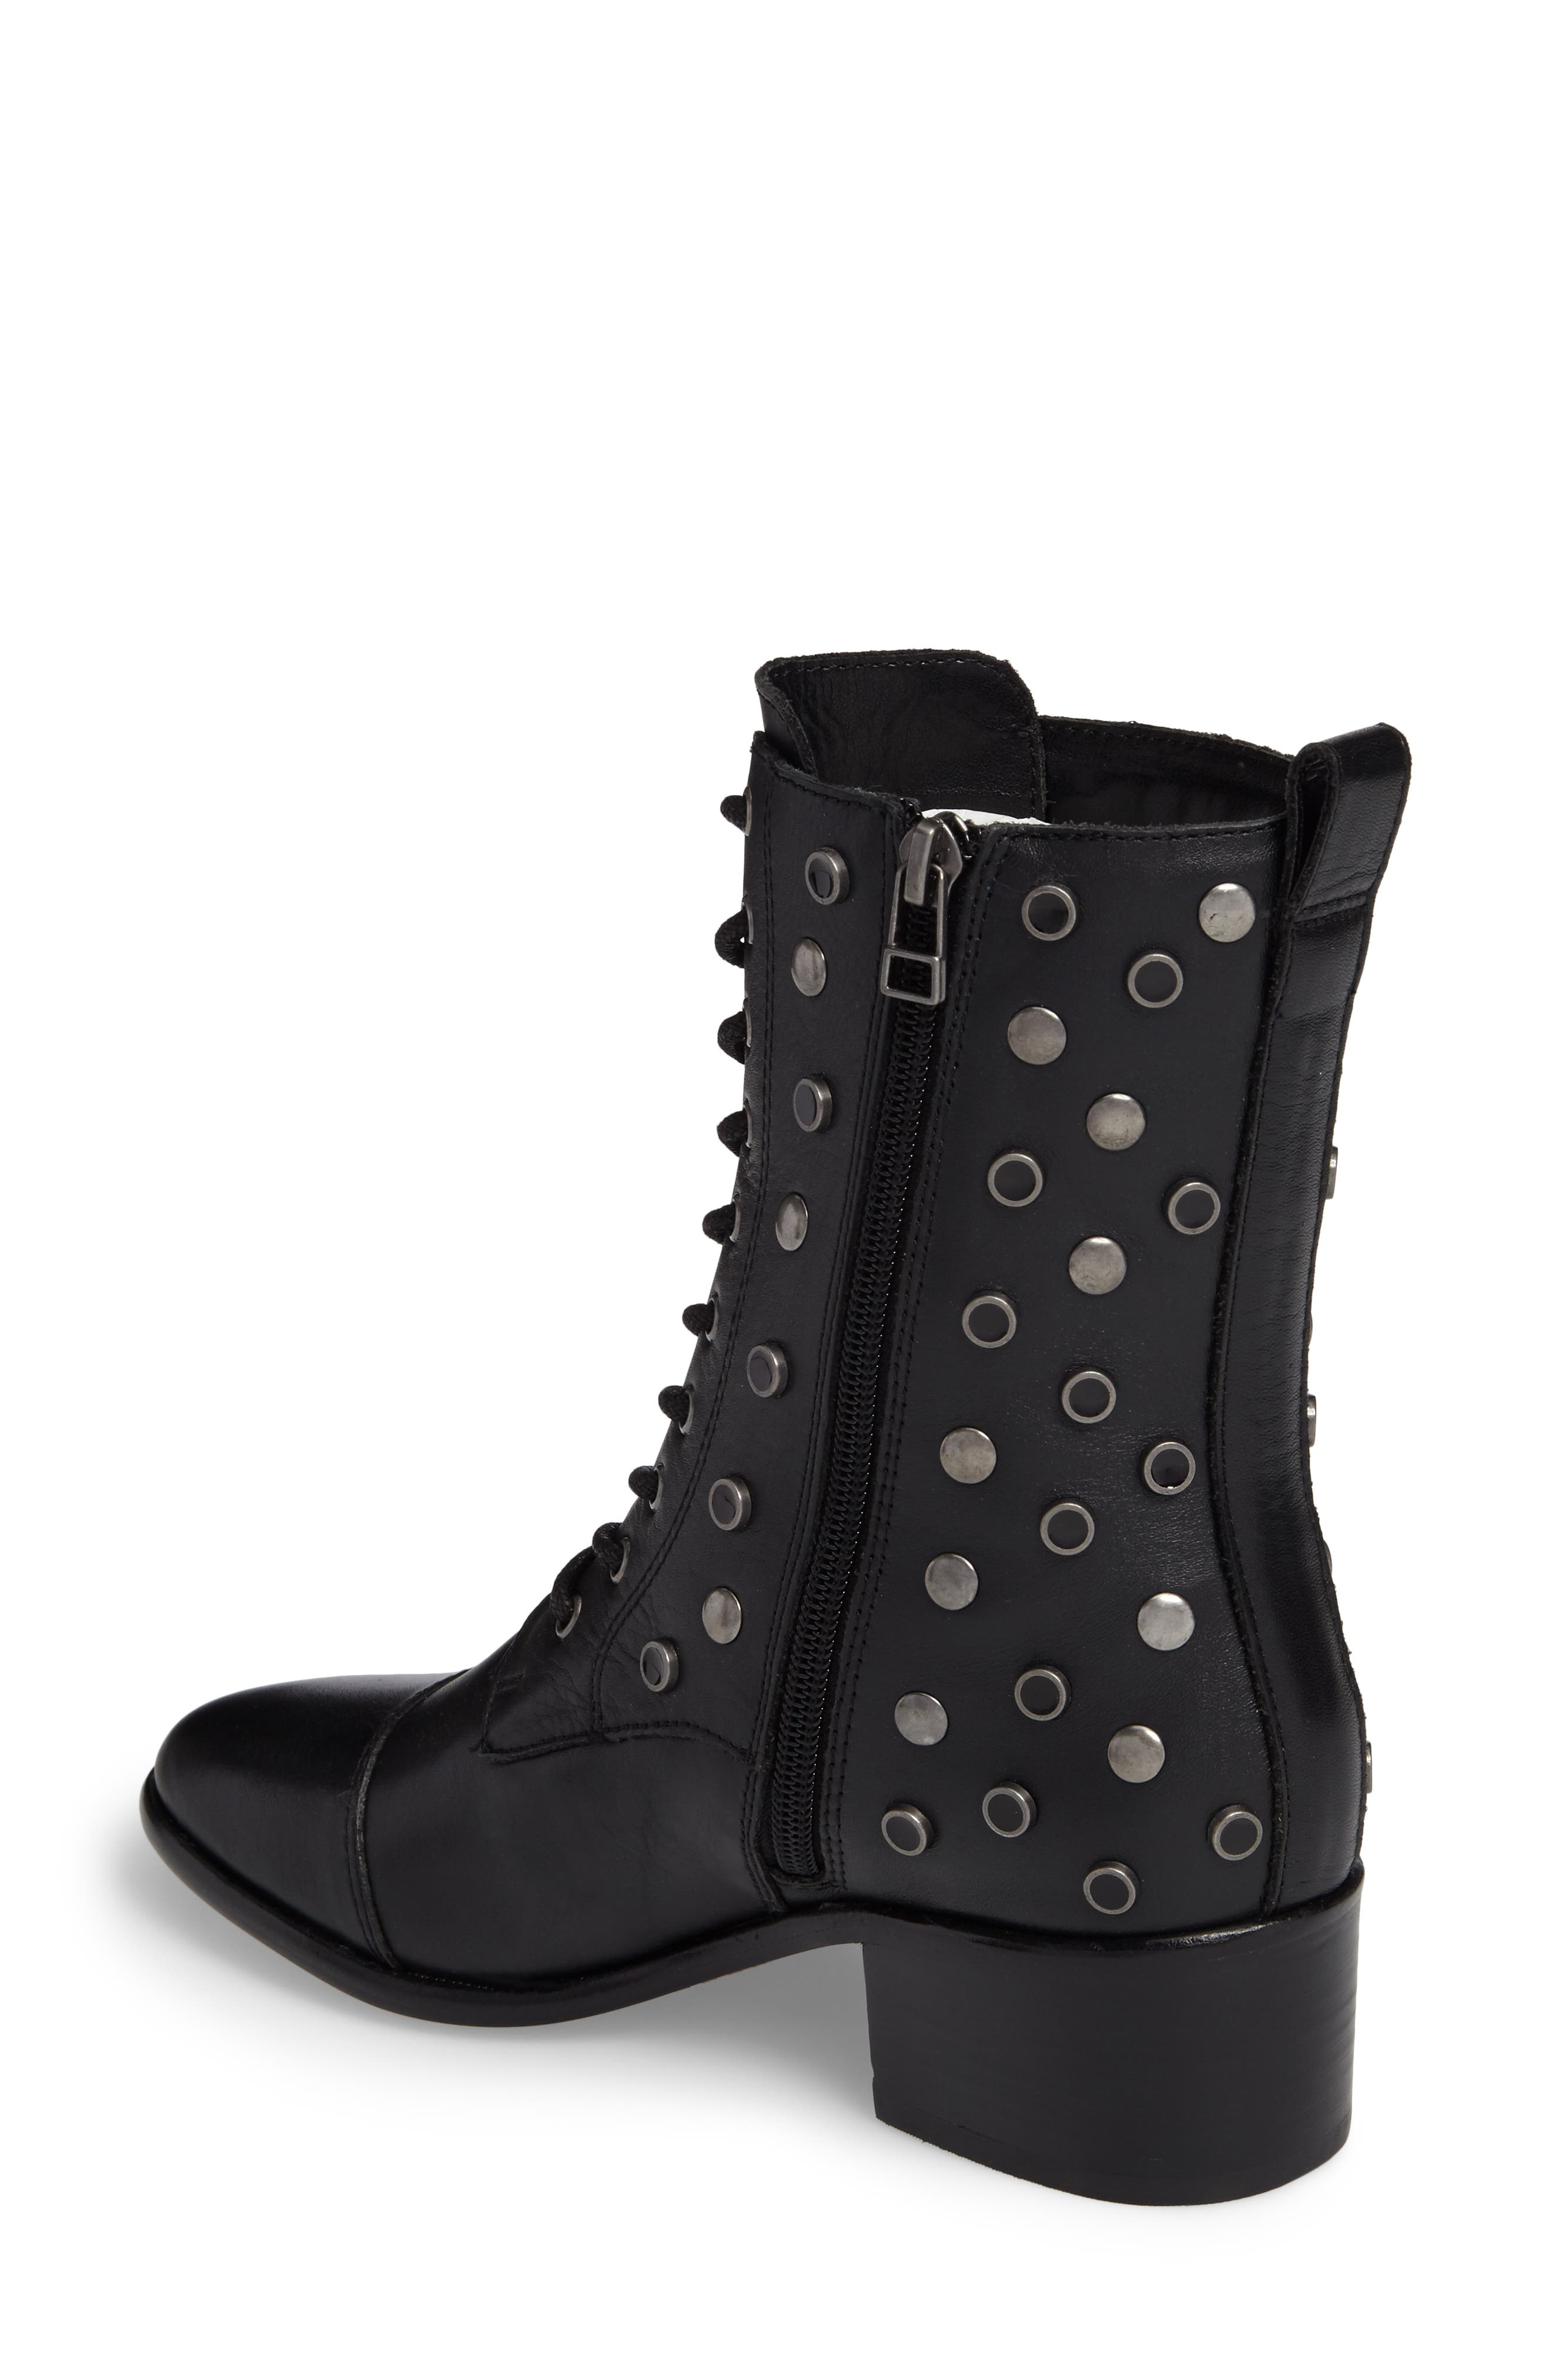 M4D3 Grazie Embellished Water Resistant Boot,                             Alternate thumbnail 2, color,                             001